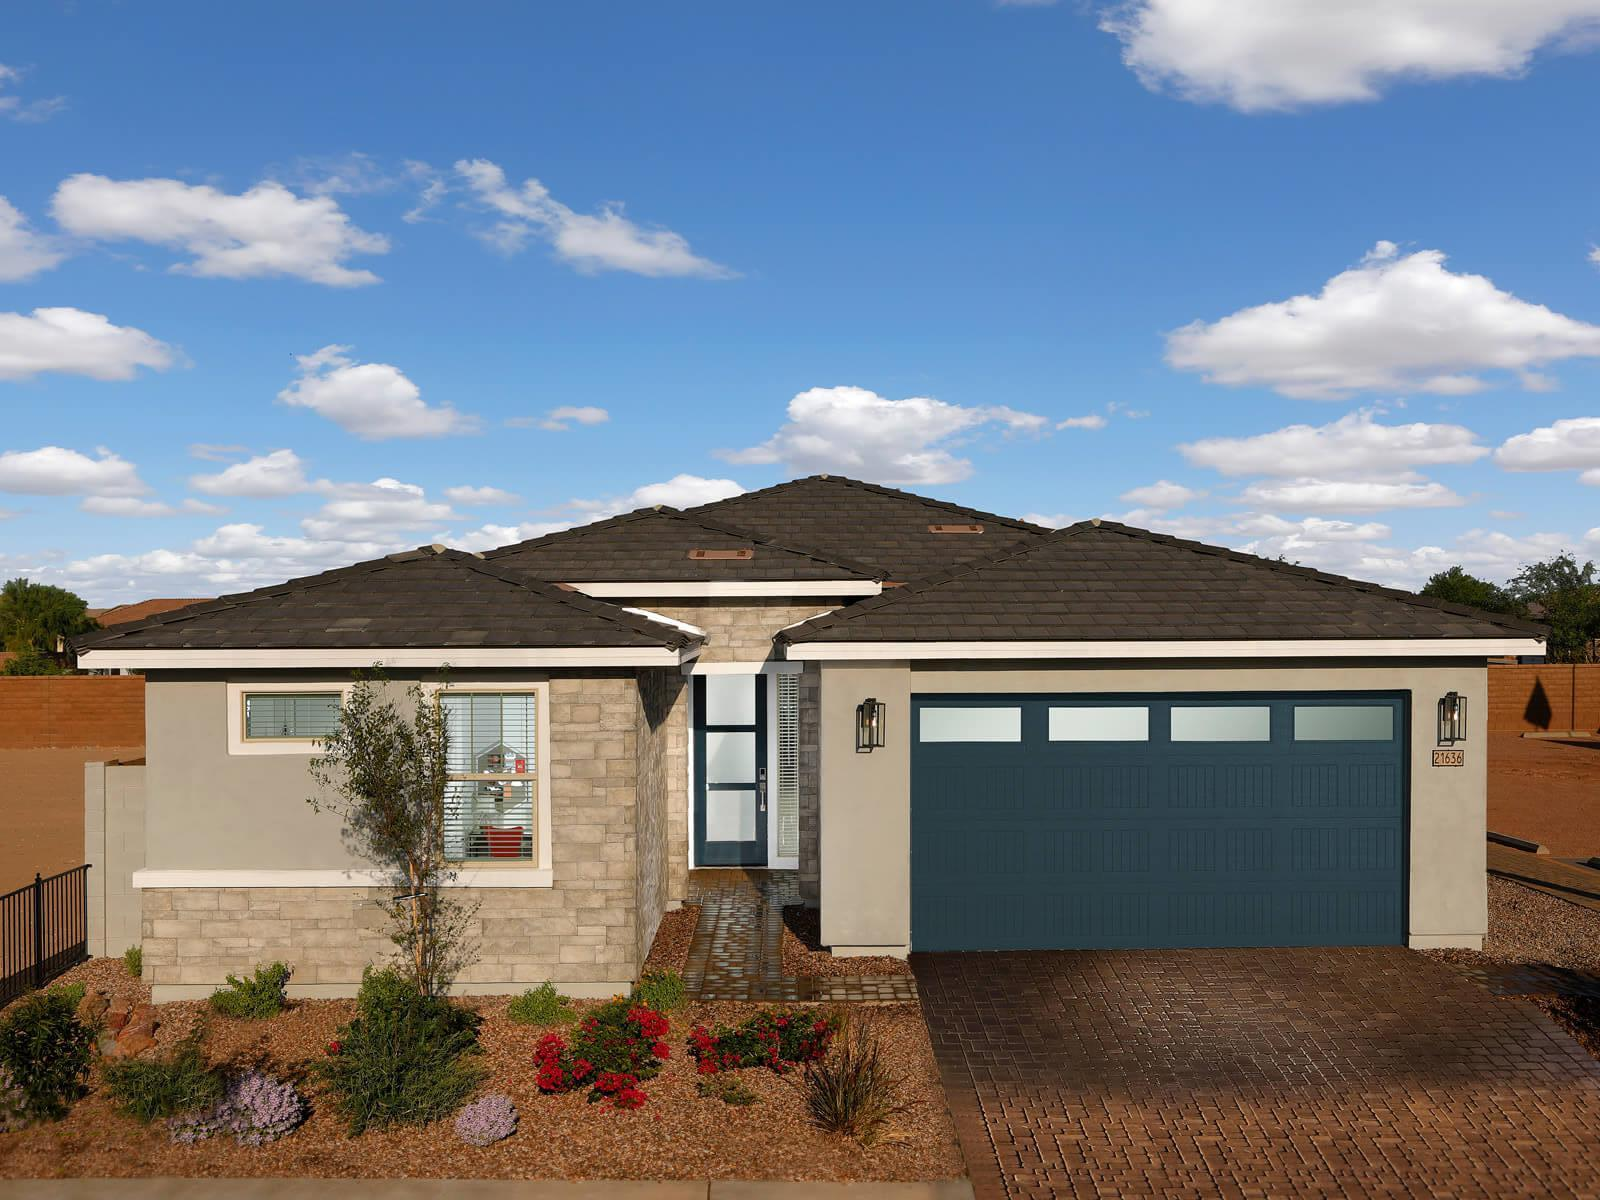 Find your dream home at Spur Cross.